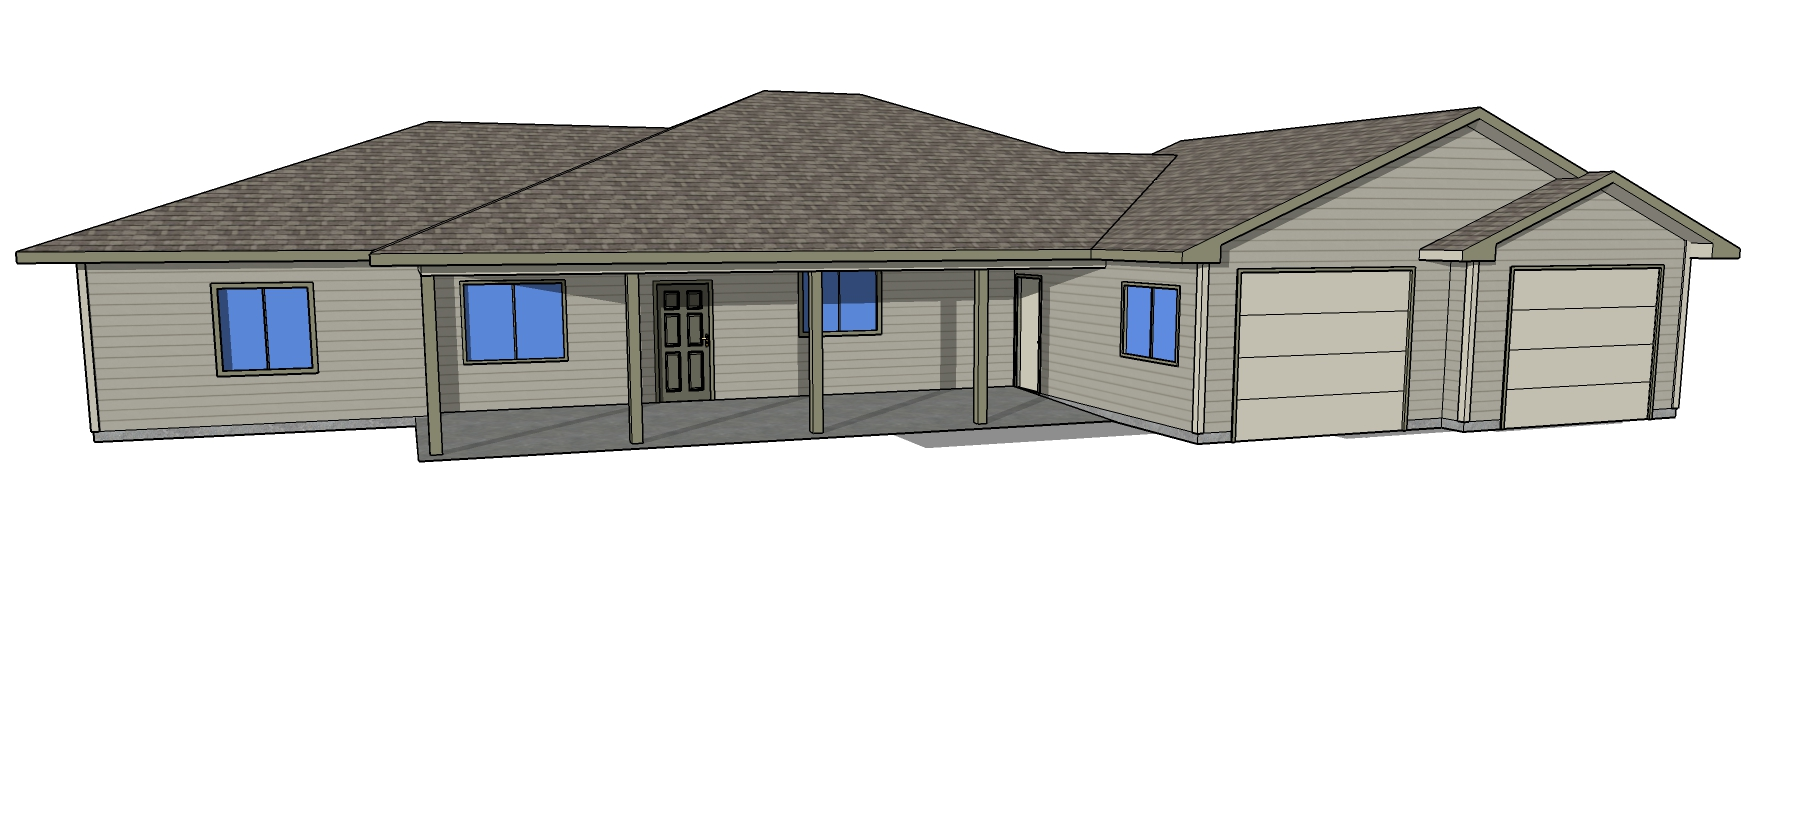 Bowman Main House Plans - Front View